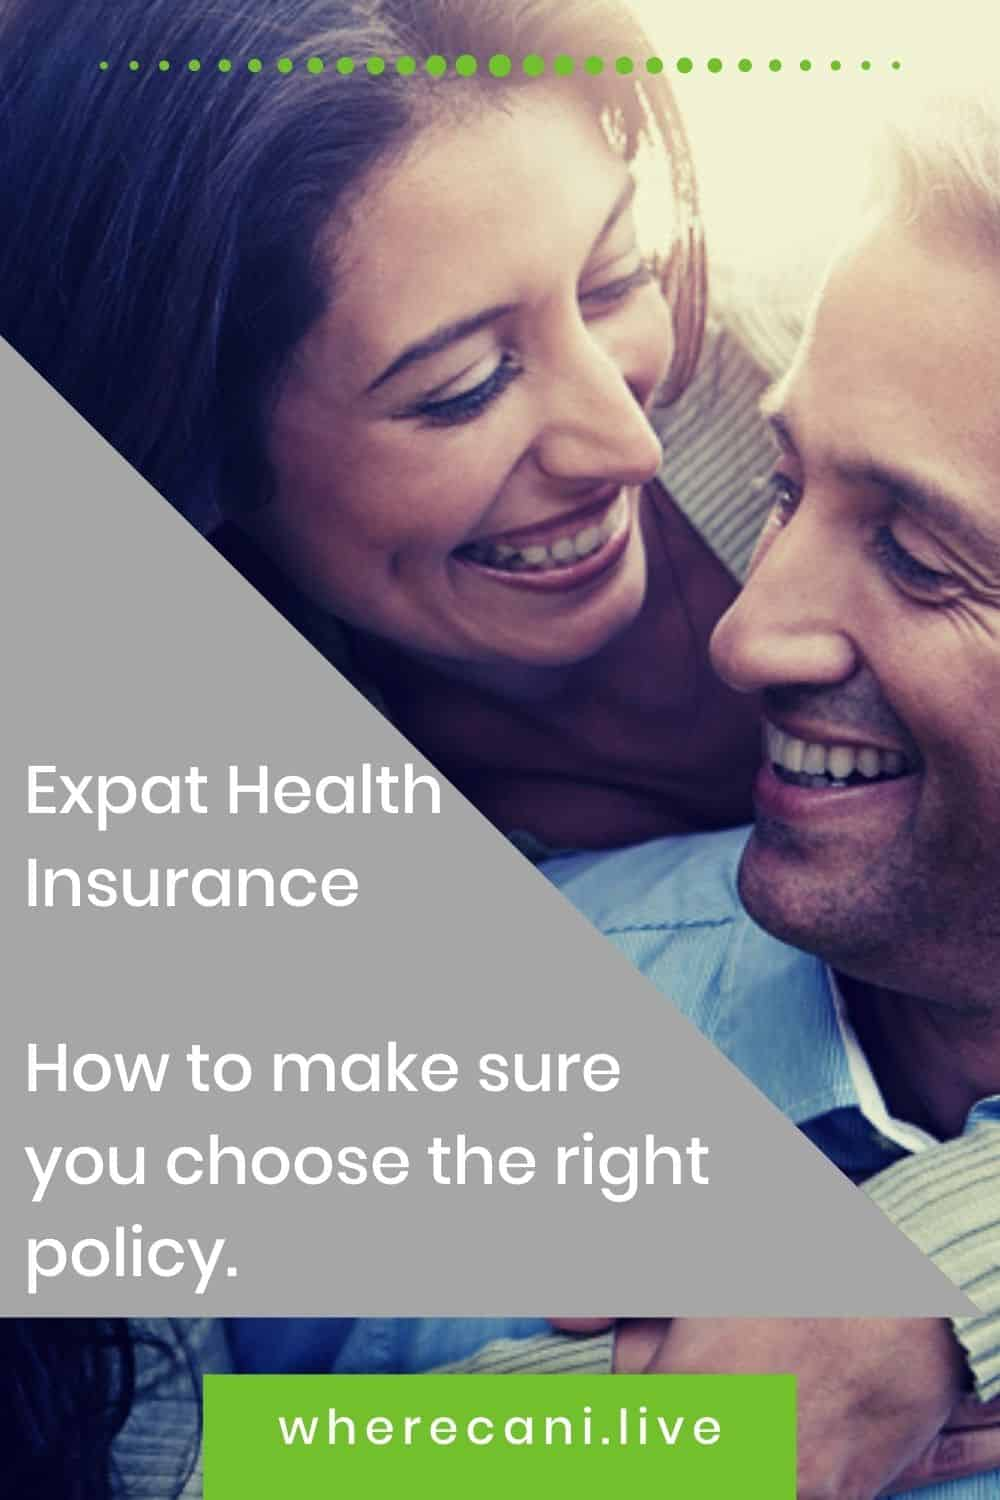 Here is what you need to know about choosing the right healthcare policy for you and your family. #expat #healthcare #family via @wherecanilive